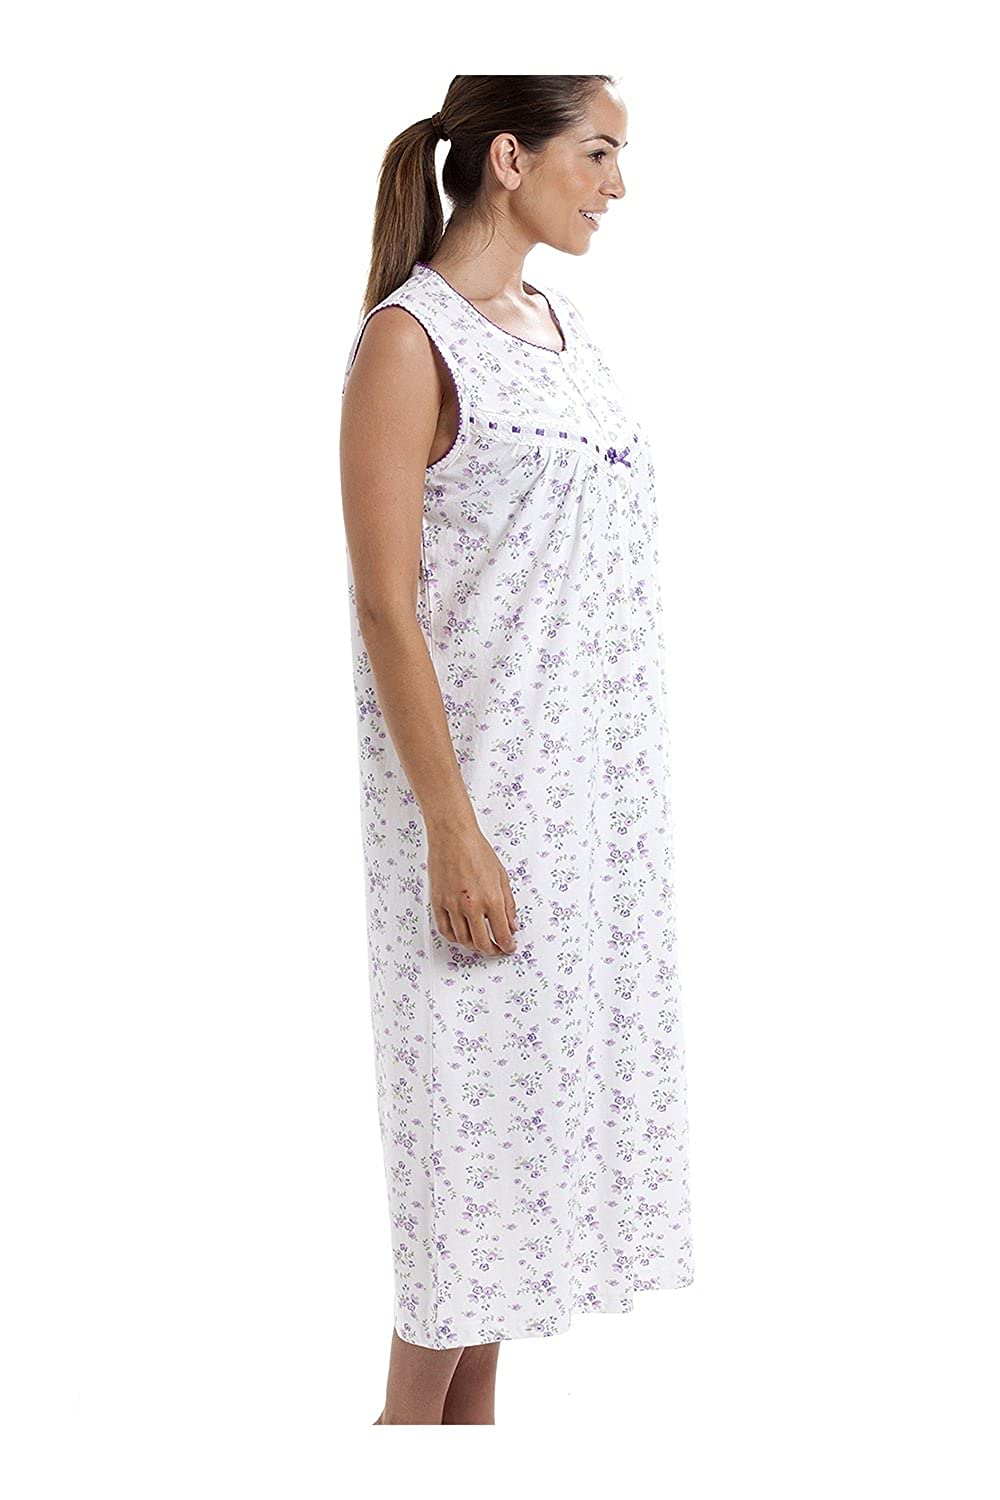 Suzy and Me Sleeveless 100/% Cotton Butterfly Print Nightdress Pink or Aqua.